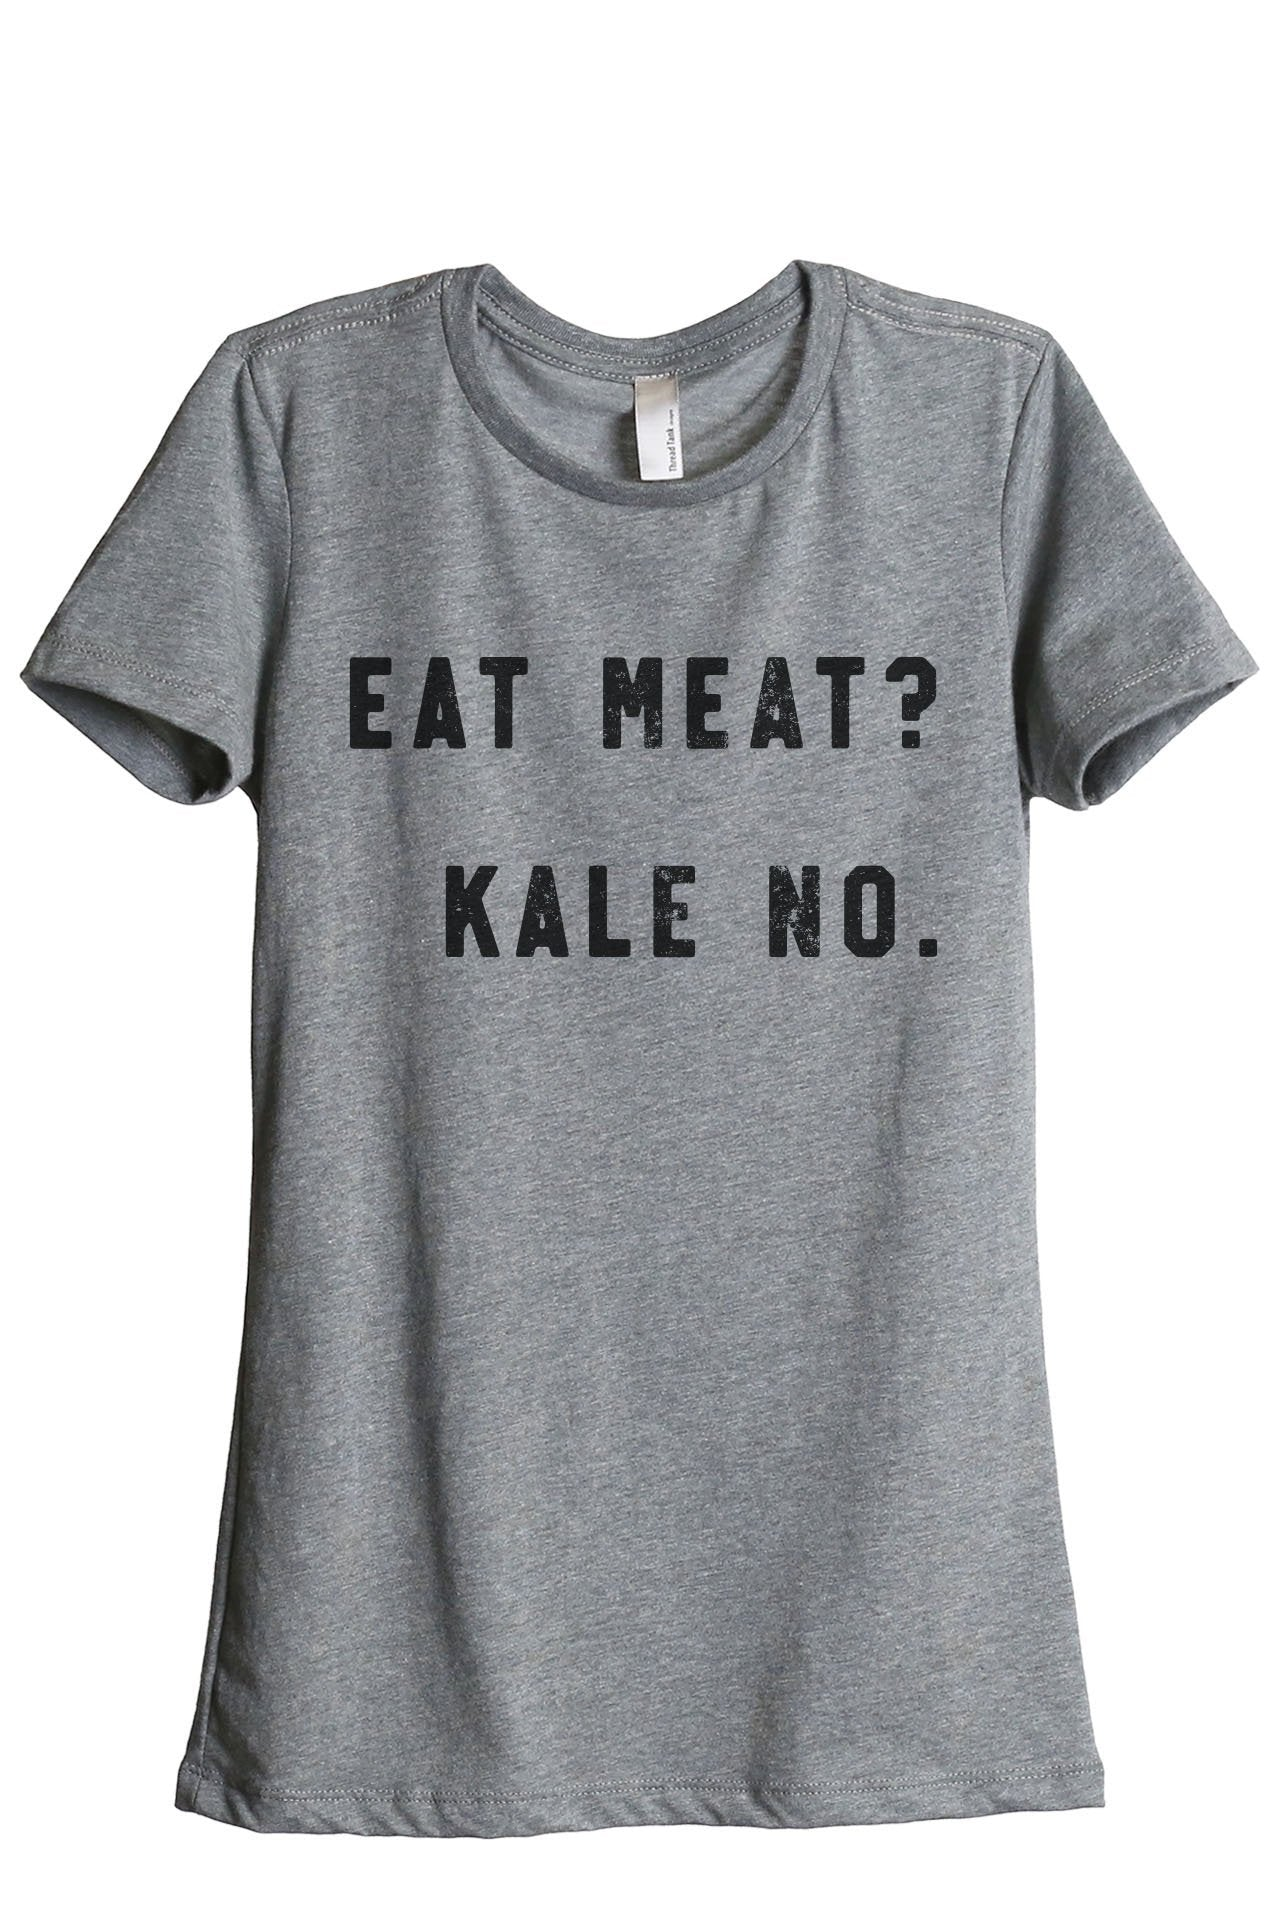 Eat Meat Kale No Women's Relaxed Crewneck T-Shirt Top Tee Heather Grey